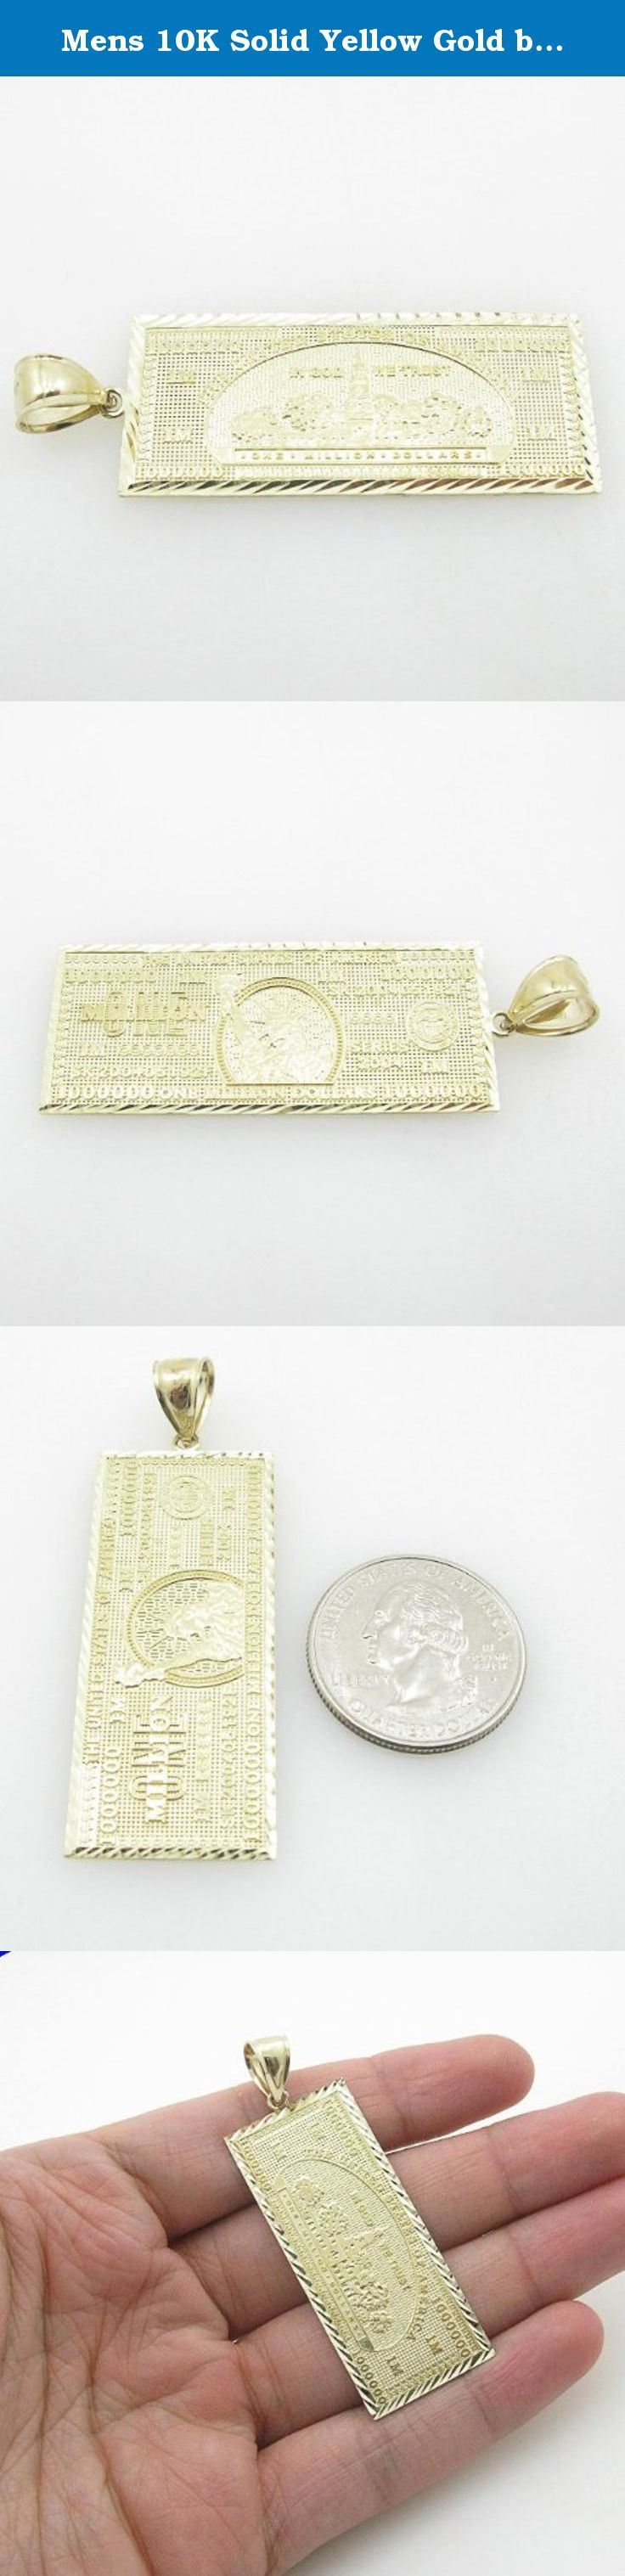 Mens 10K Solid Yellow Gold big one million dollar bill pendant Length - 2.40 inches Width - 21.5mm. big one million dollar bill pendant , 10K Solid Yellow Gold, Length - 2.40 inches Width - 21.5mm, 6.6 gr.